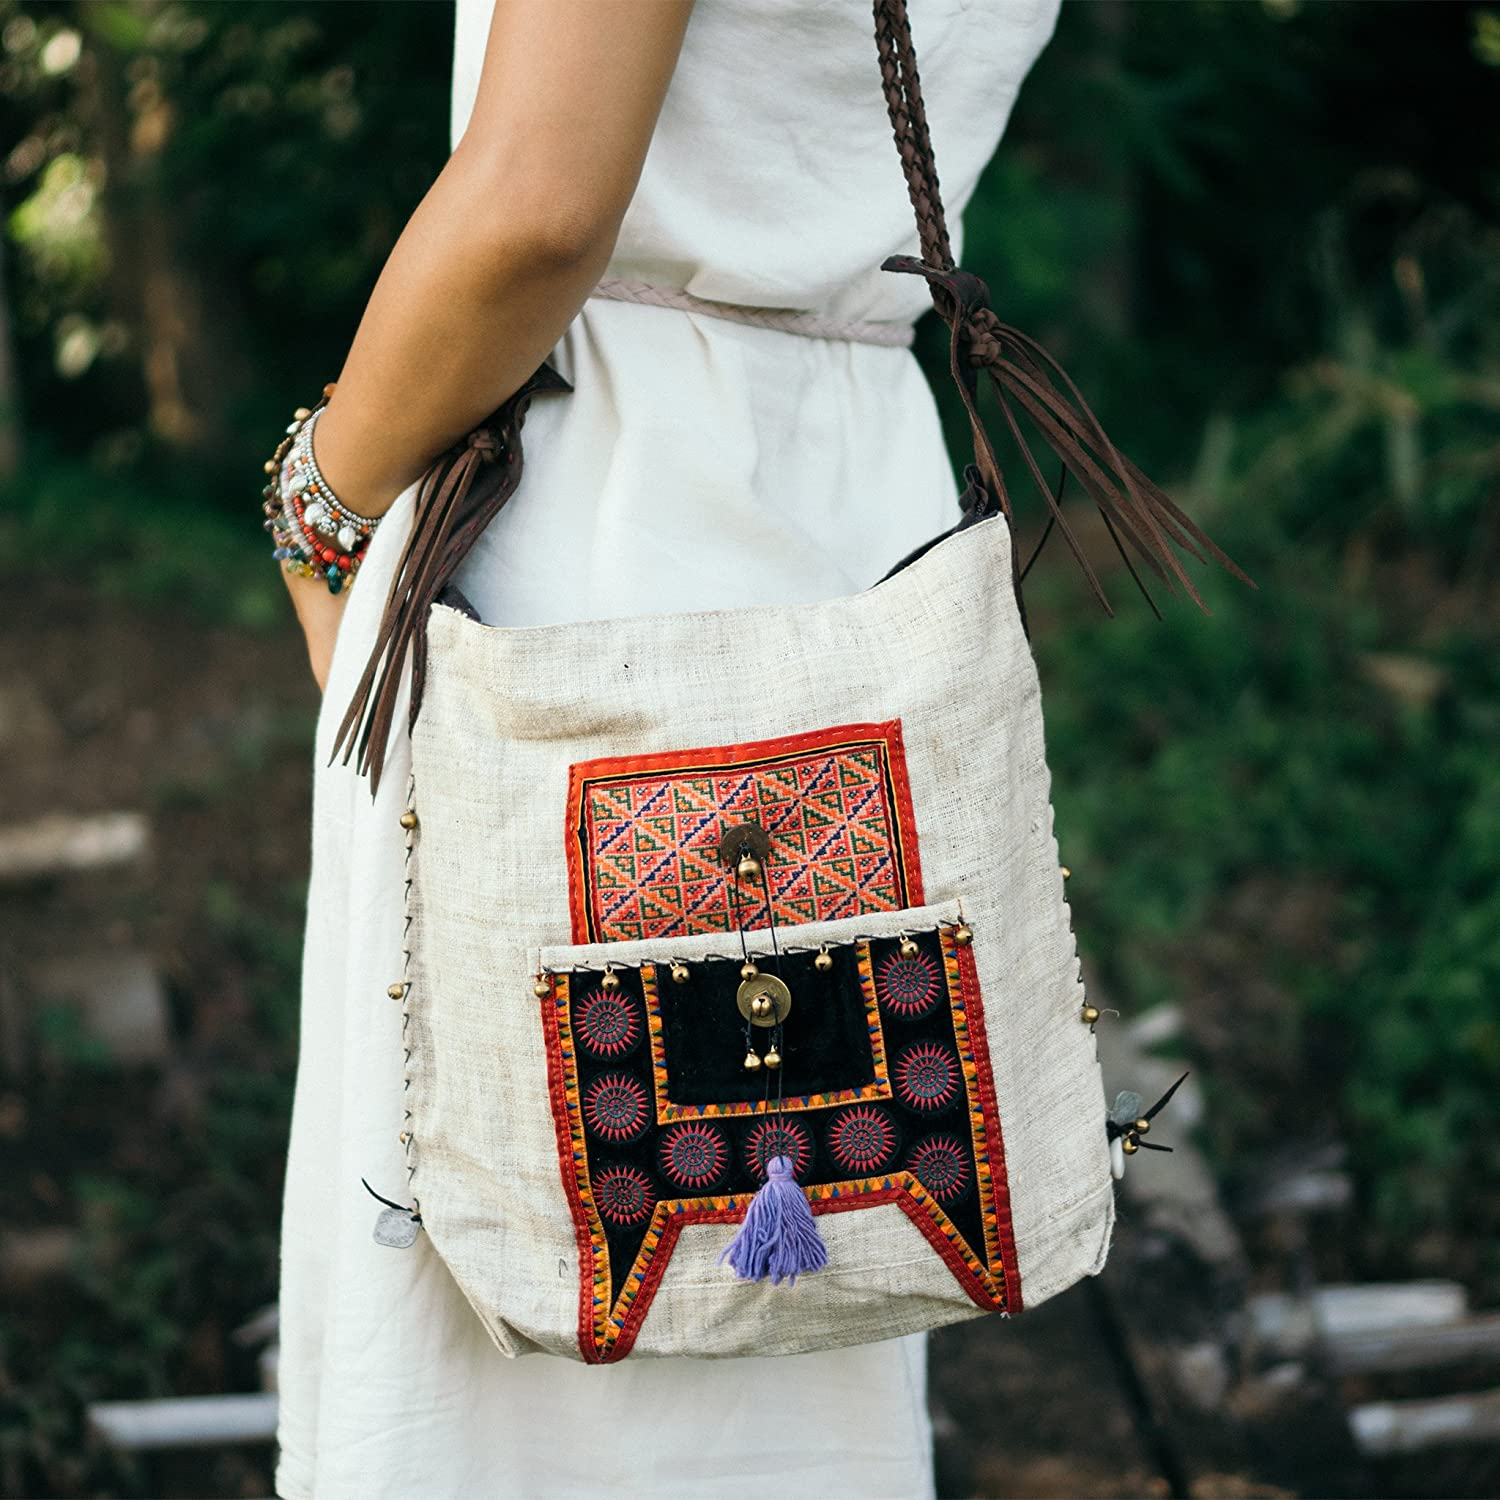 Changnoi Handcrafted Hippie Outlet SALE Crossbody Bag with service Hmong Tribe Hill